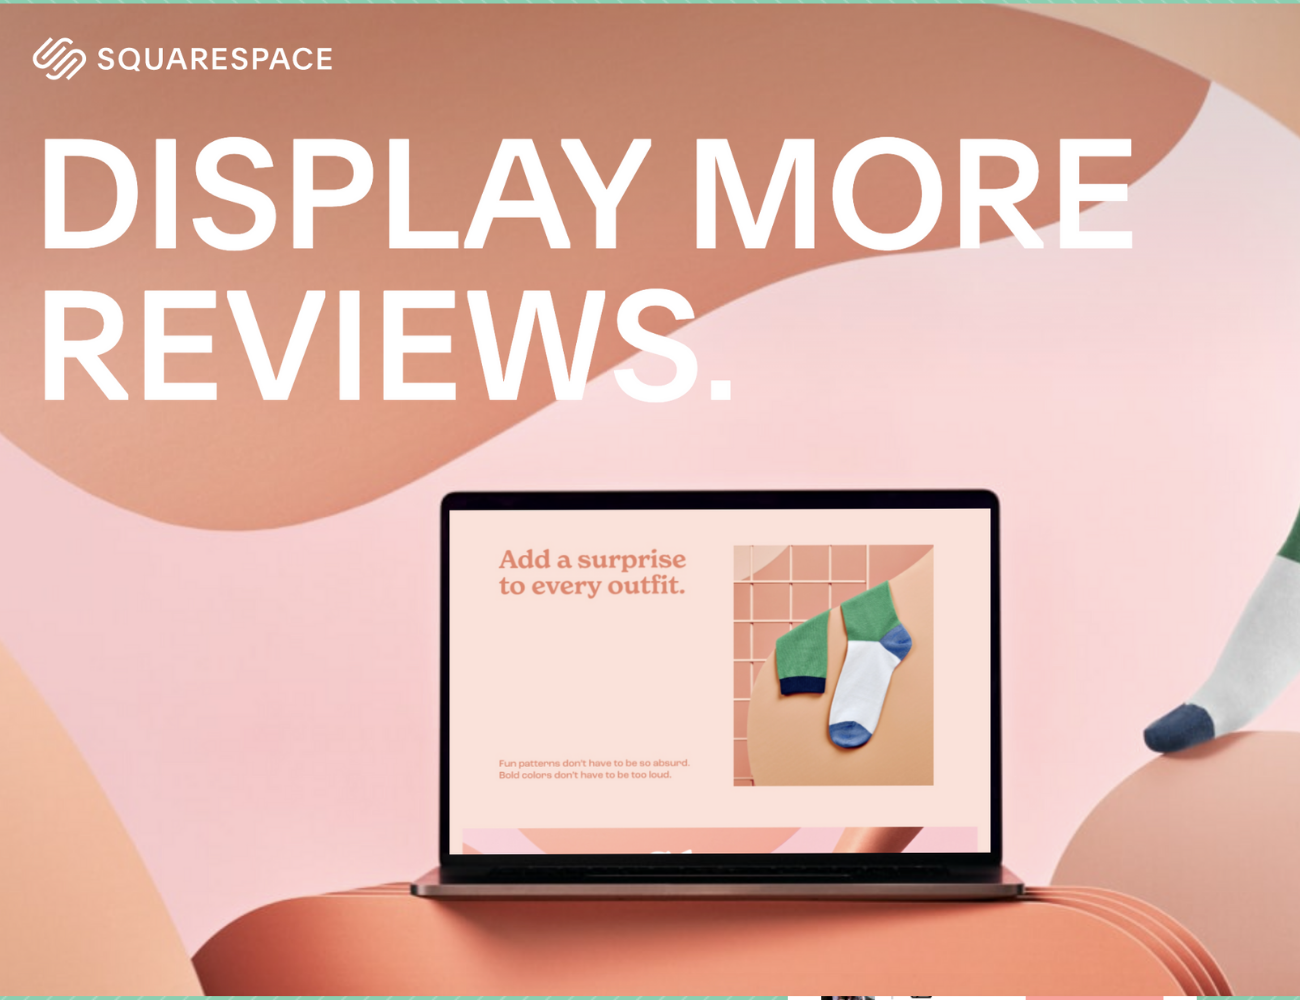 Displaying Reviews For Squarespace Users Just Got Easier